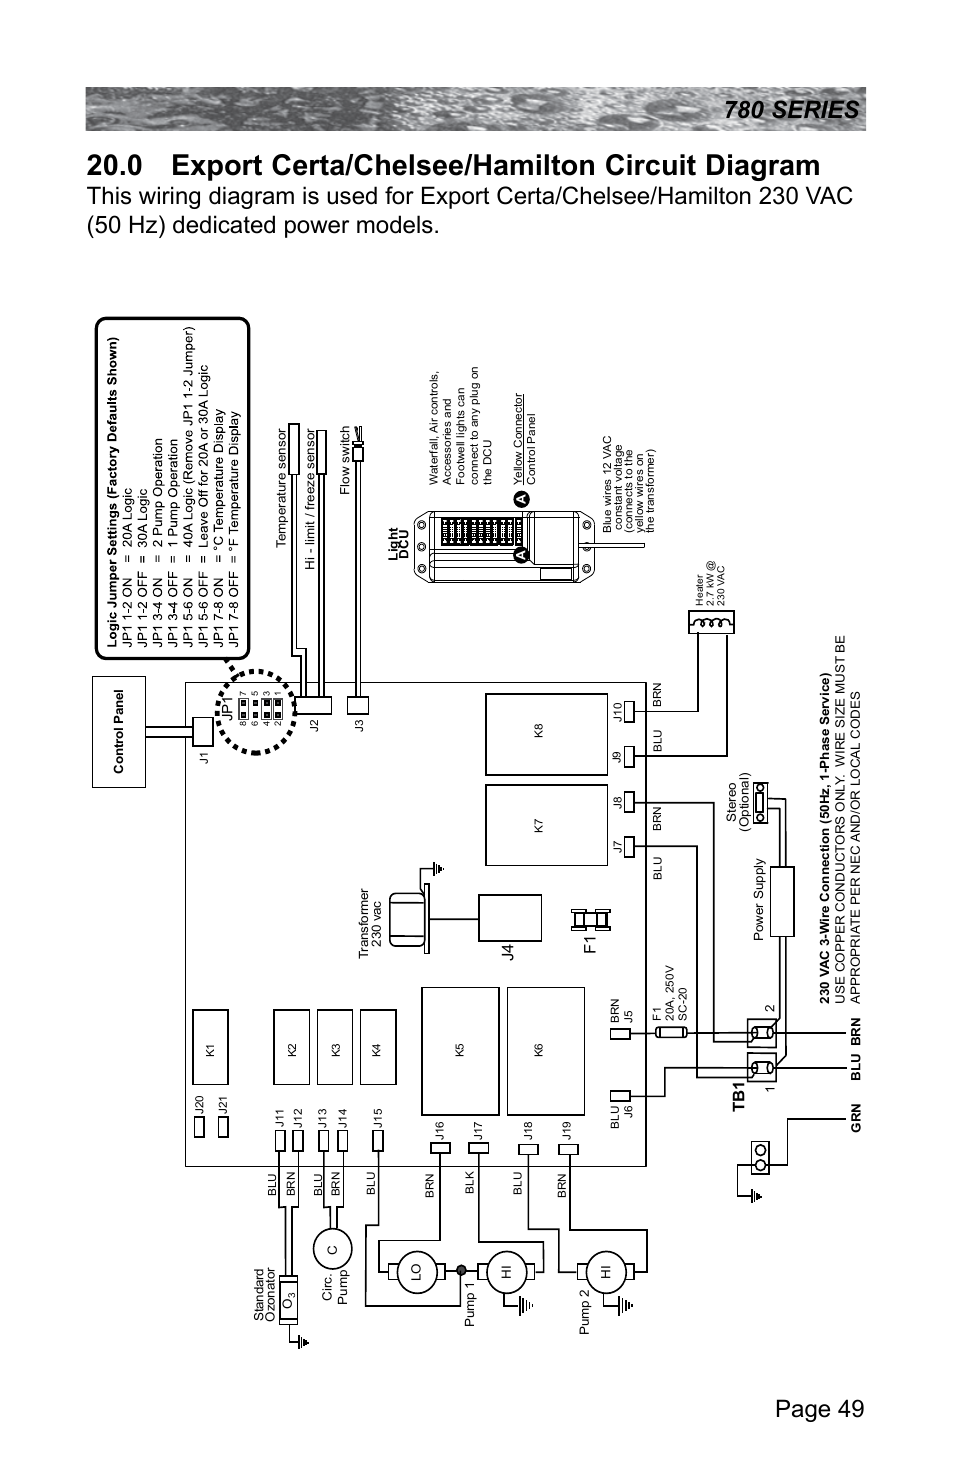 0 Export Certa Chelsee Hamilton Circuit Diagram Sundance Spas Spa Wiring Instructions Camden 780 User Manual Page 53 72